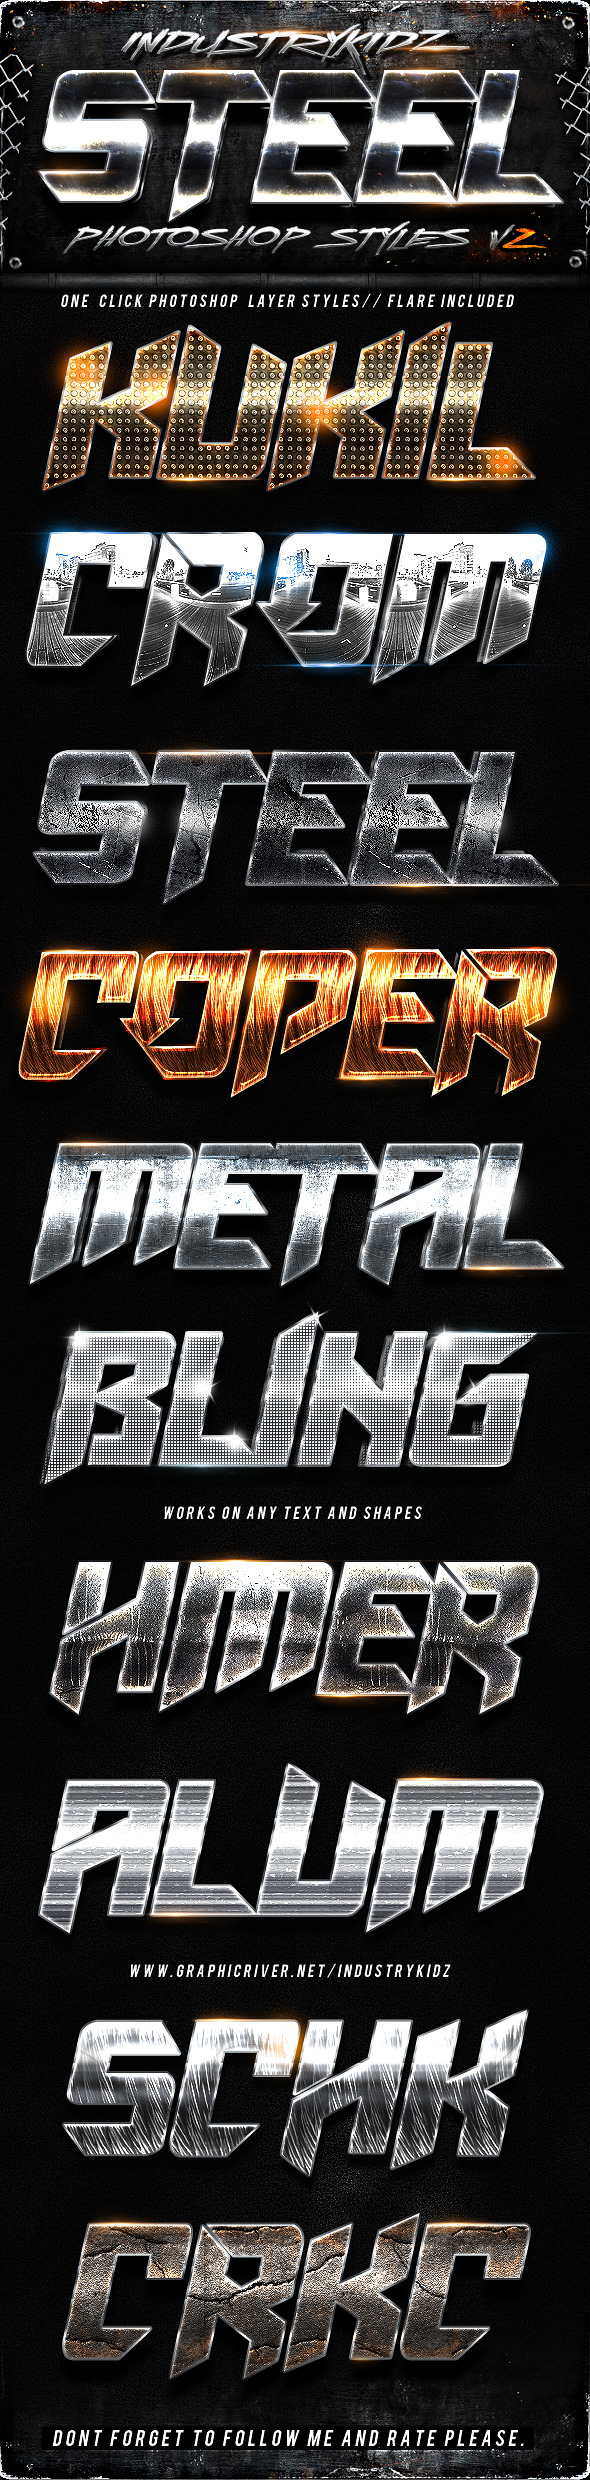 Metal Steel Photoshop Layers Styles V2 - Text Effects Styles